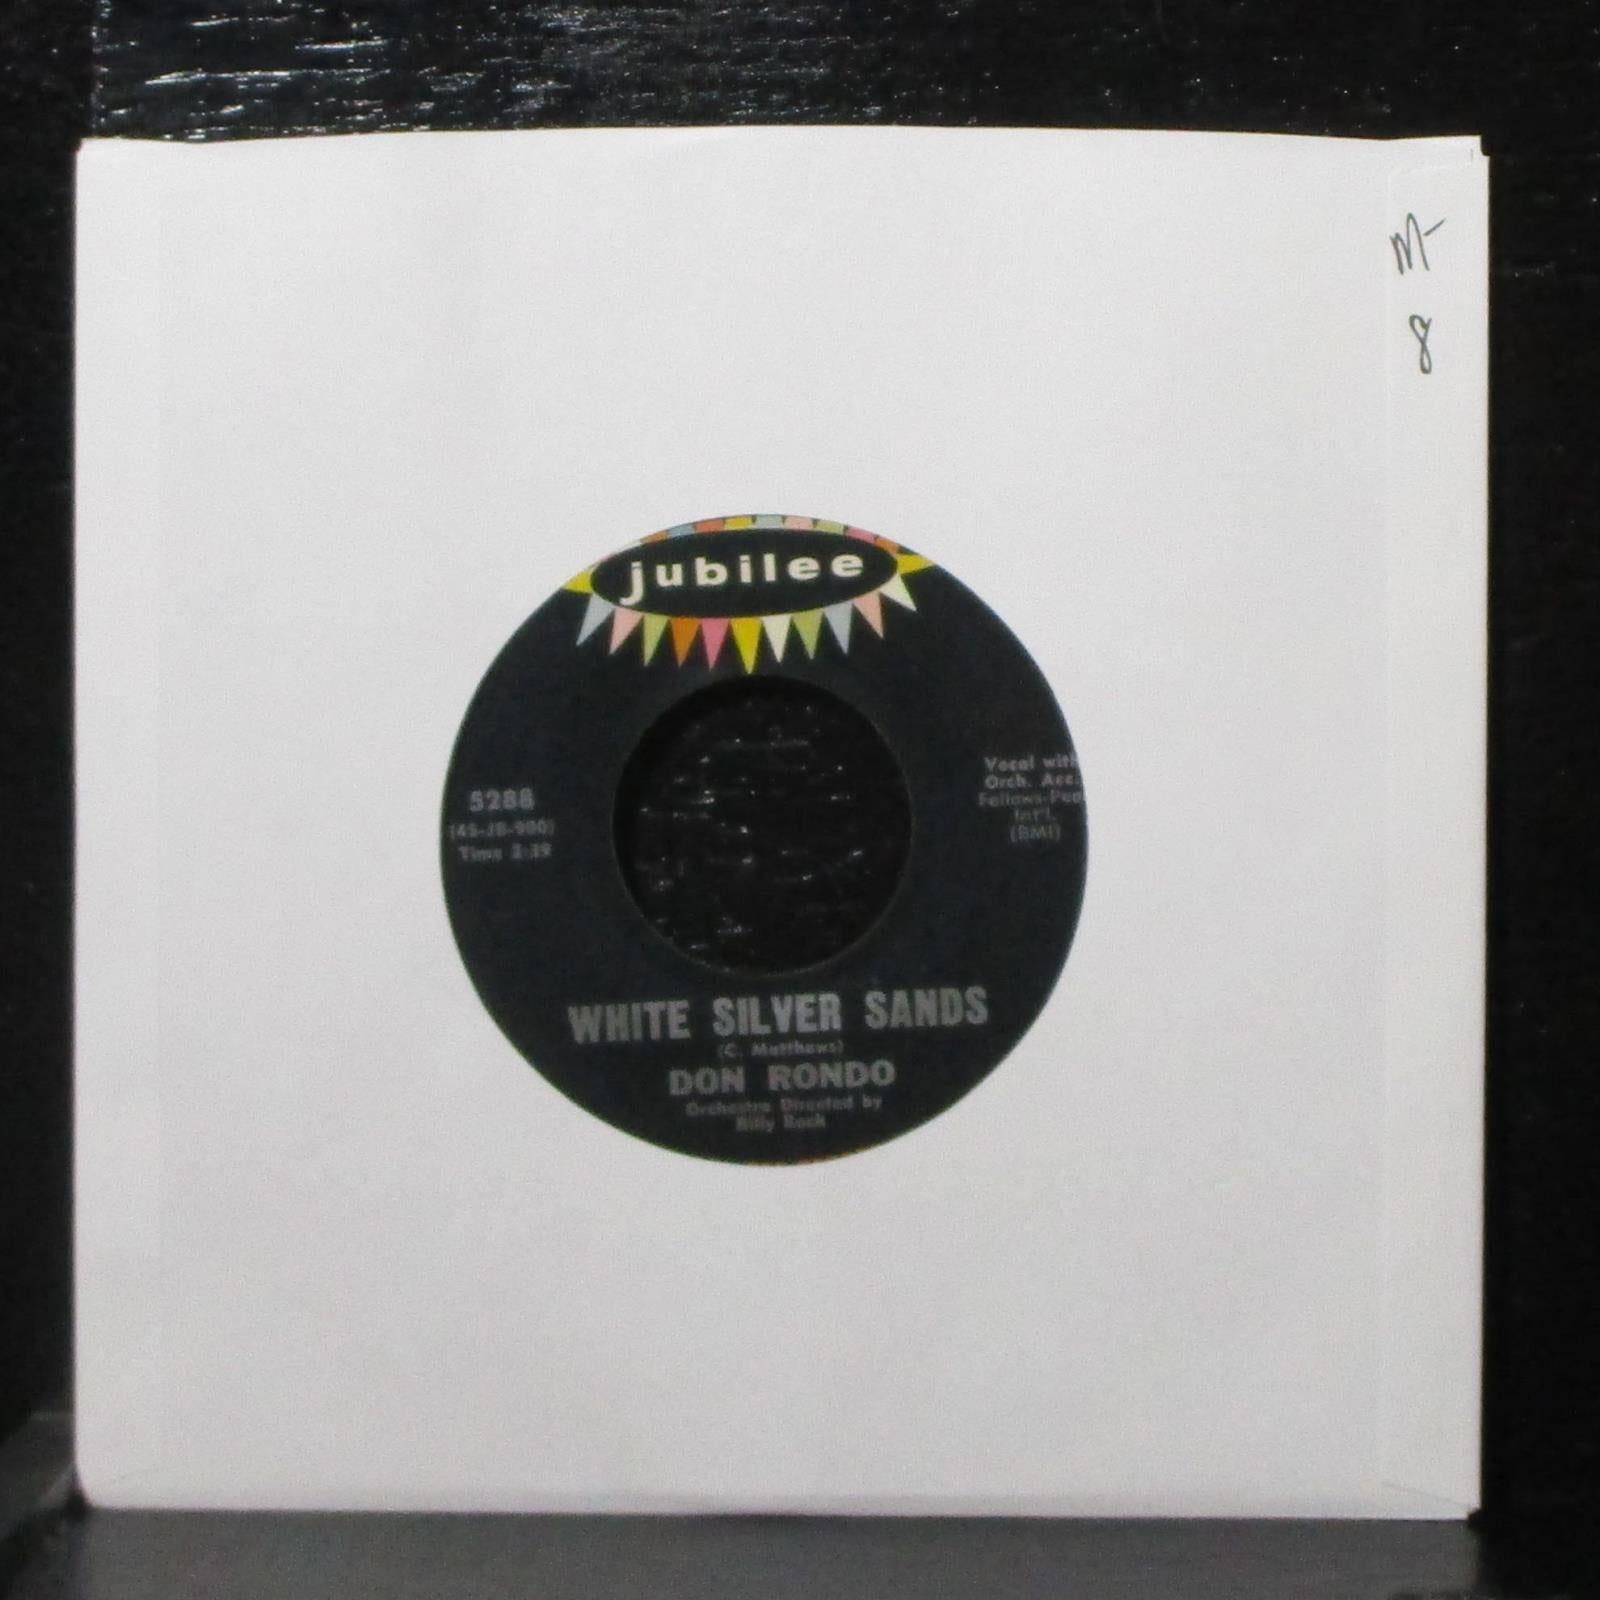 "Don Rondo - White Silver Sands / Stars Fell On Alabama 7"" Mint- Jubilee 5288 USA"